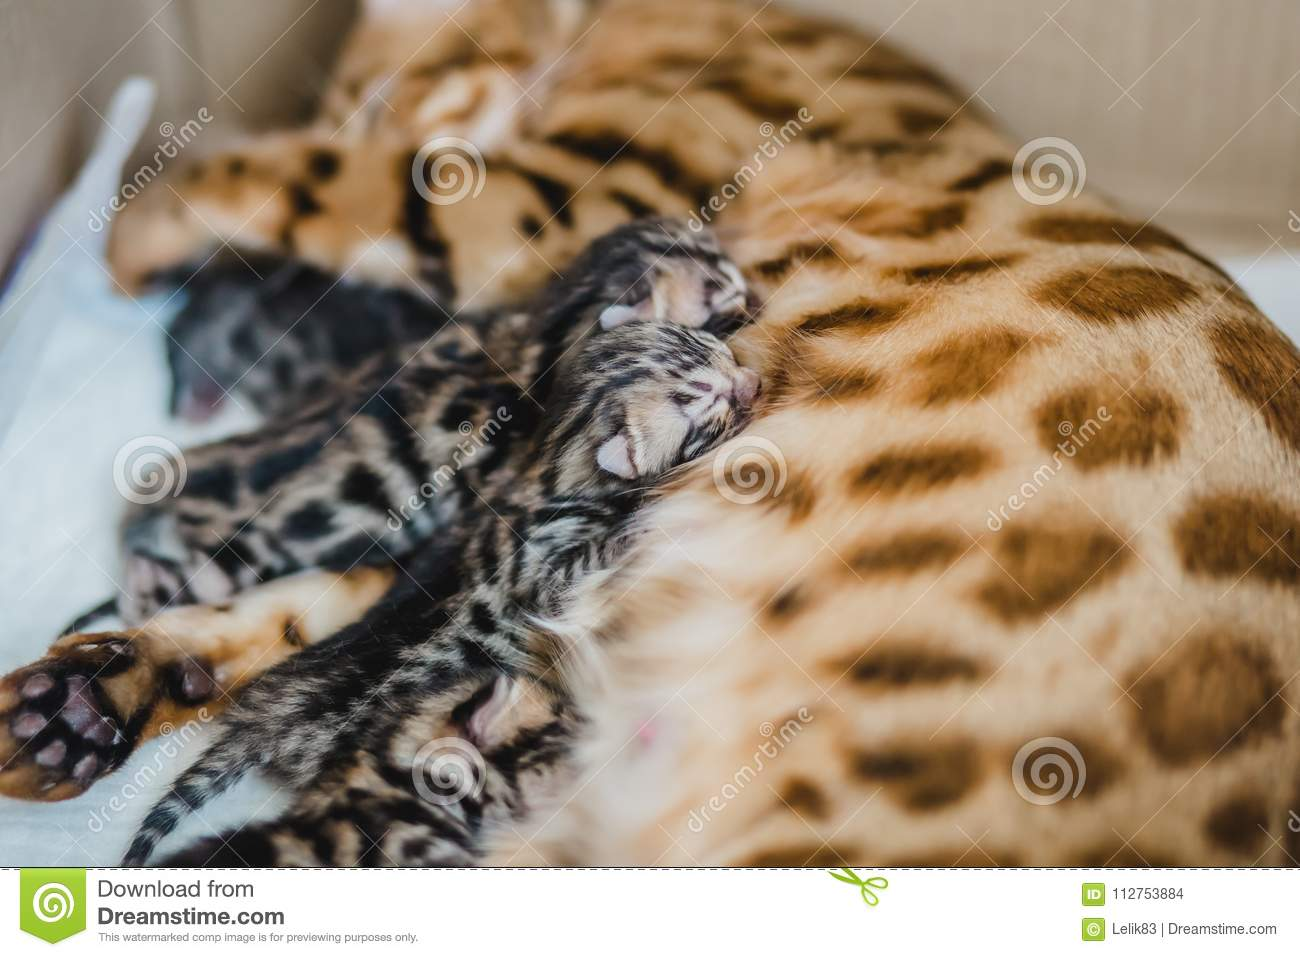 Cattery Of Bengalcats Kitten Stock Photo - Image of looking